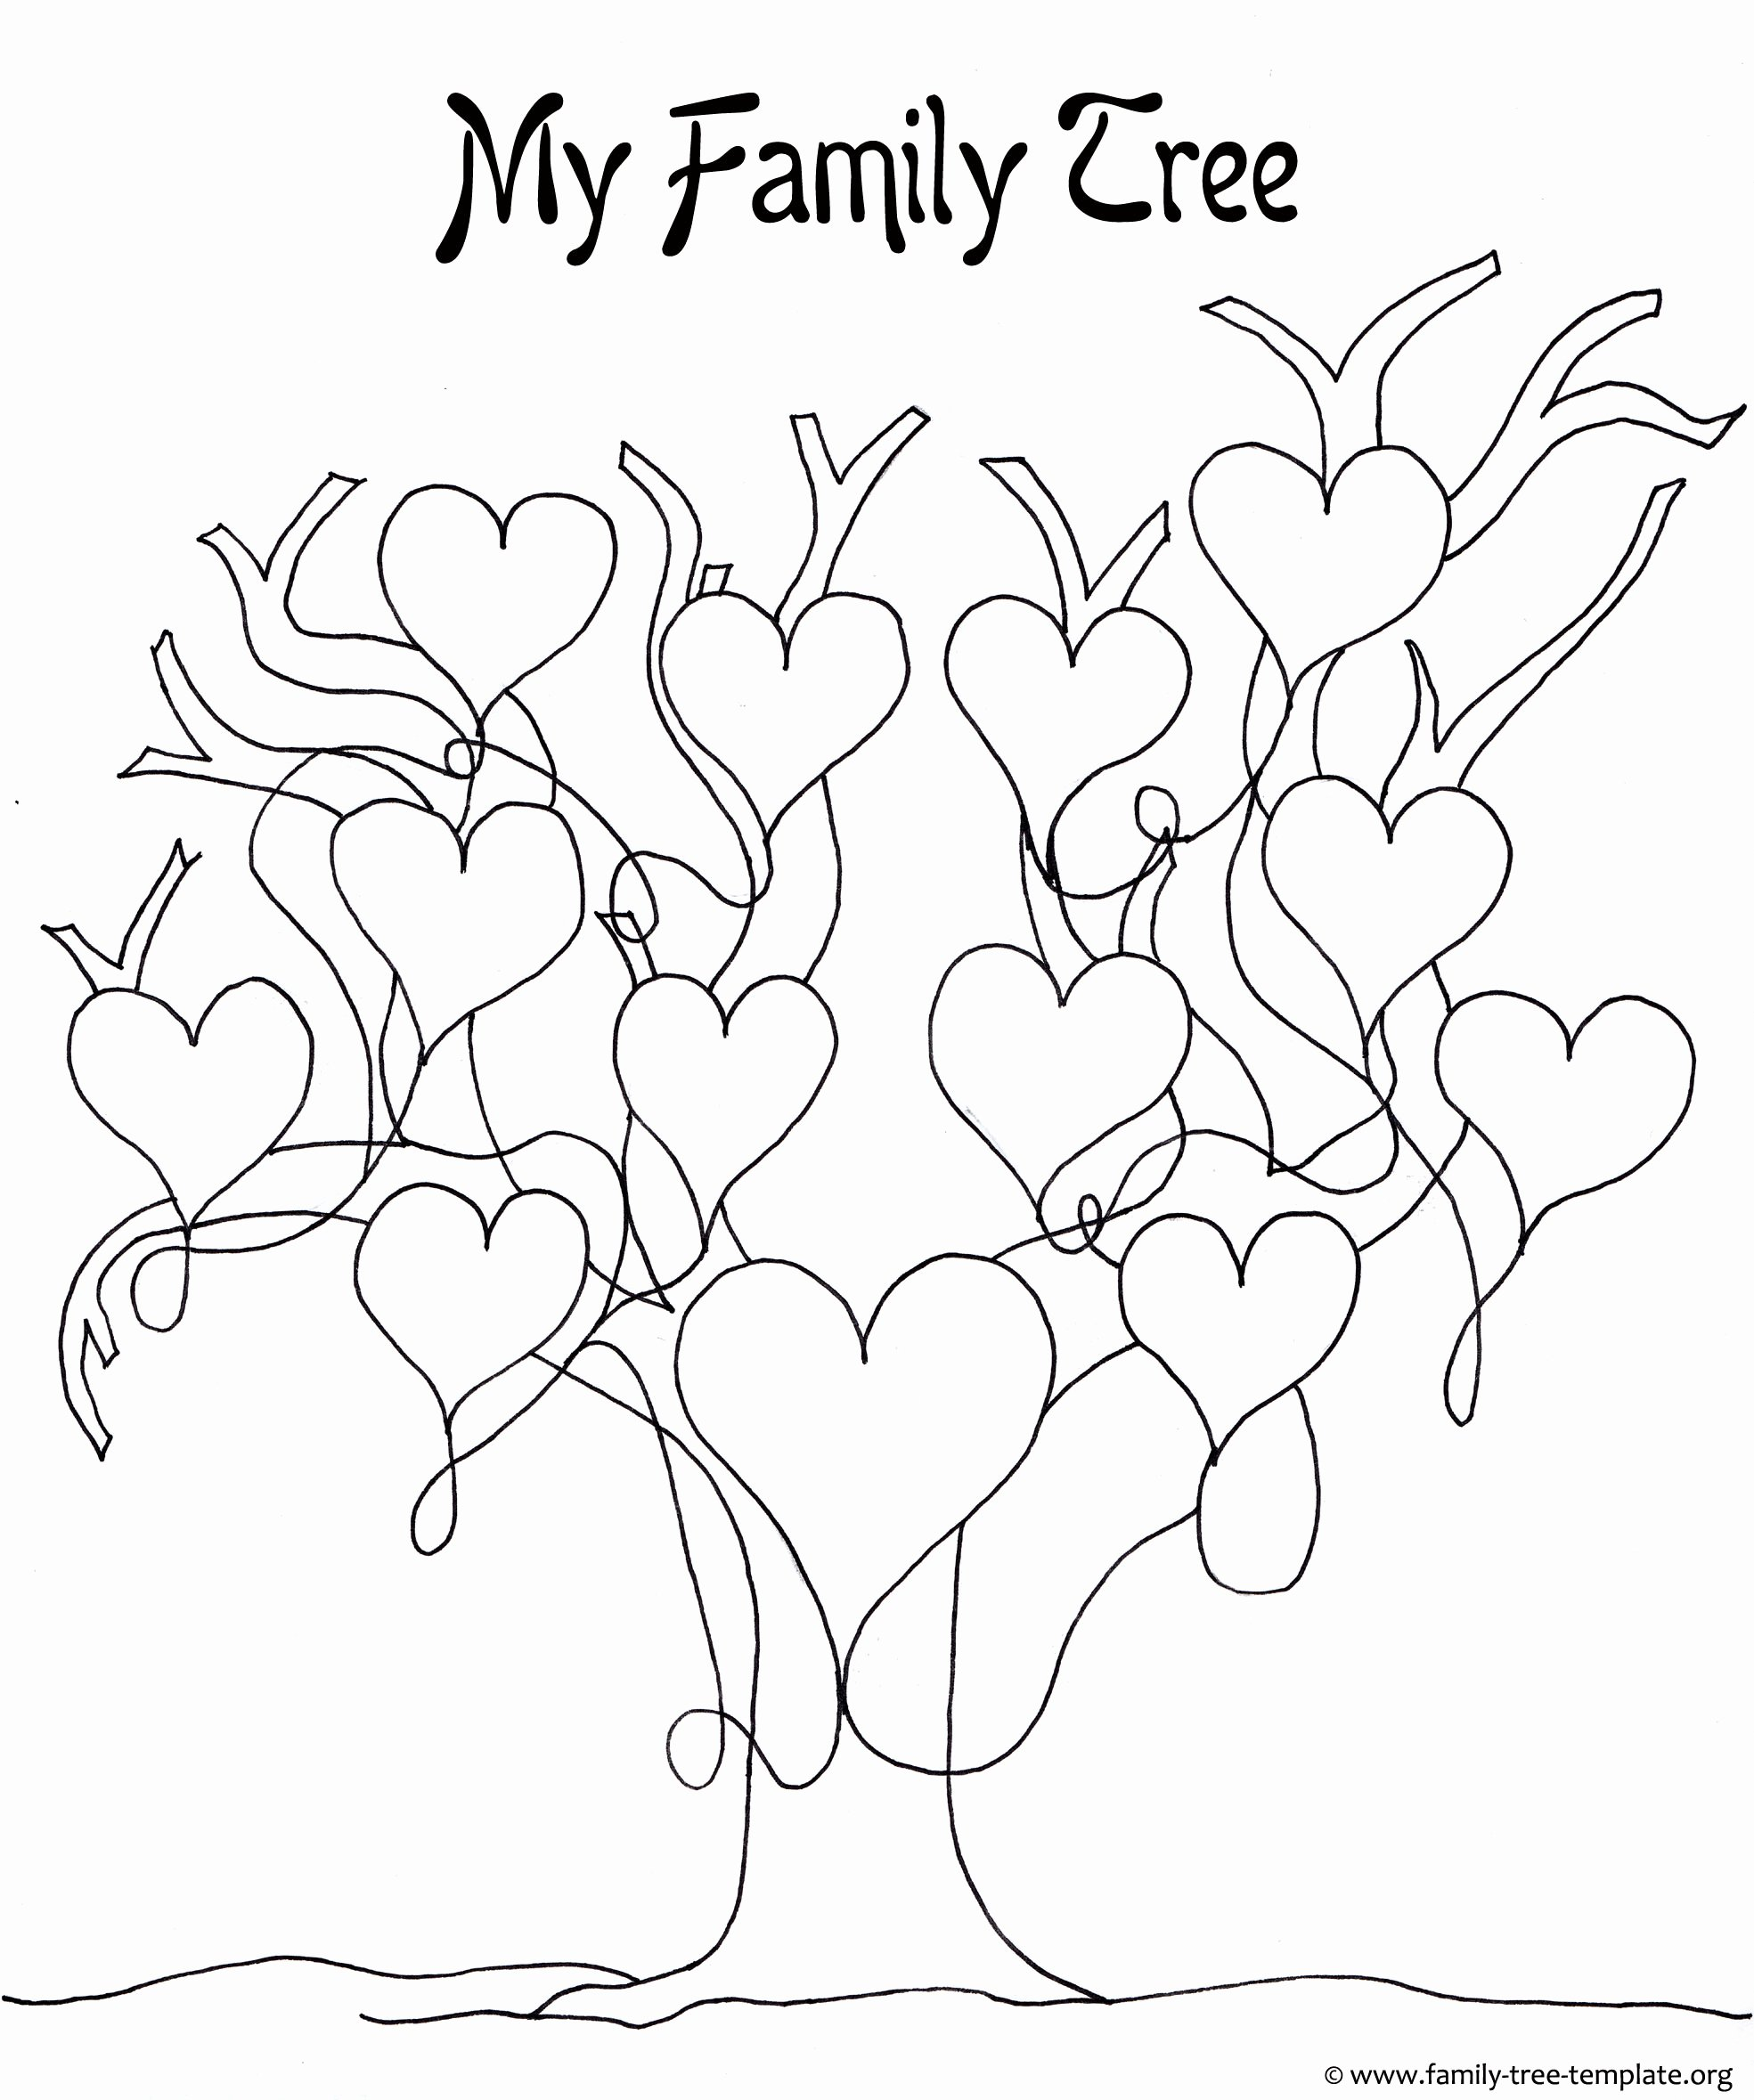 Family Tree Template Online New A Printable Blank Family Tree to Make Your Kids Genealogy